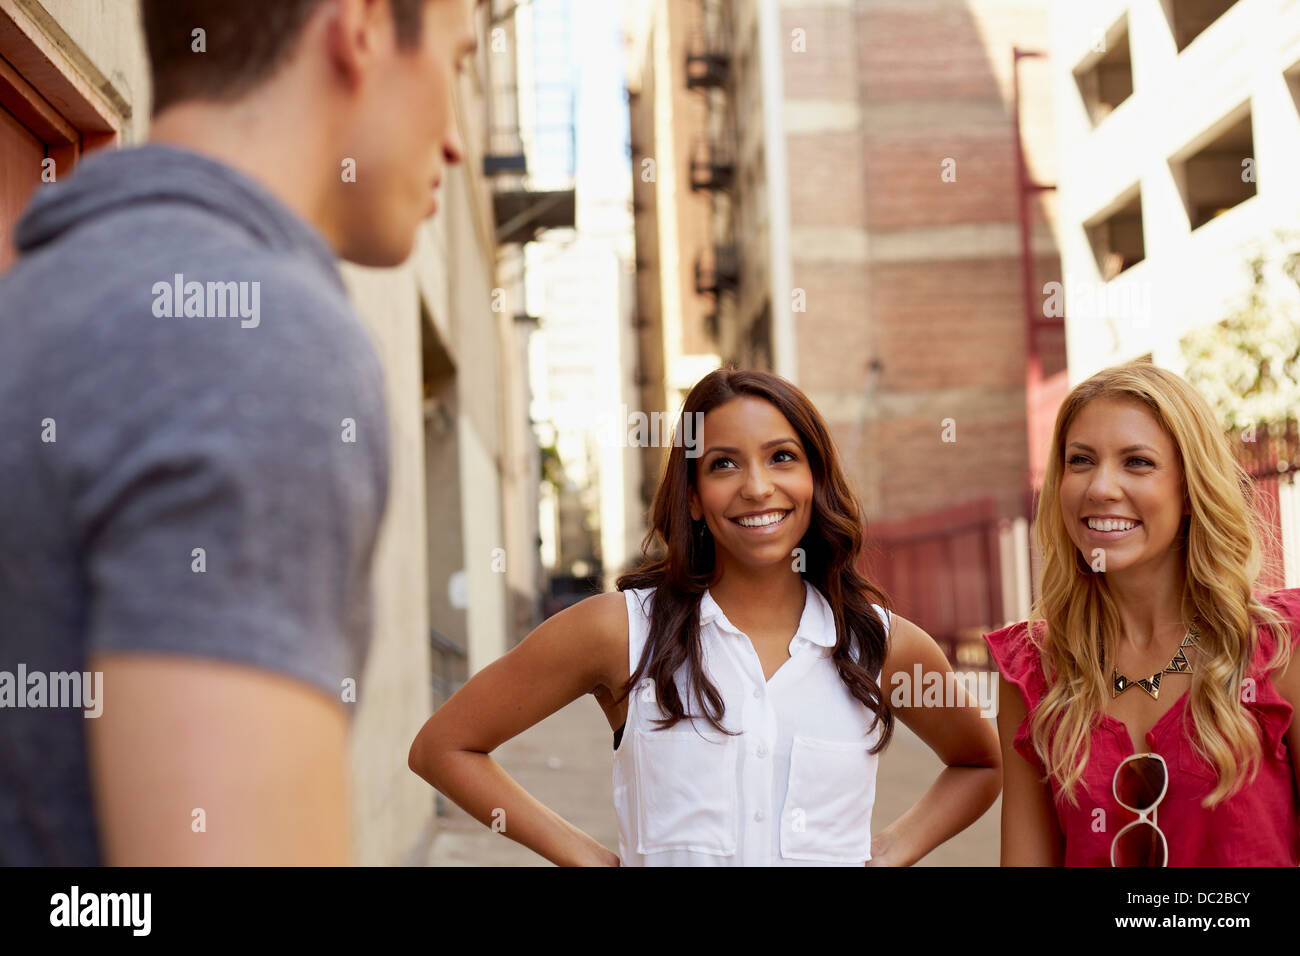 People chatting in back lane - Stock Image